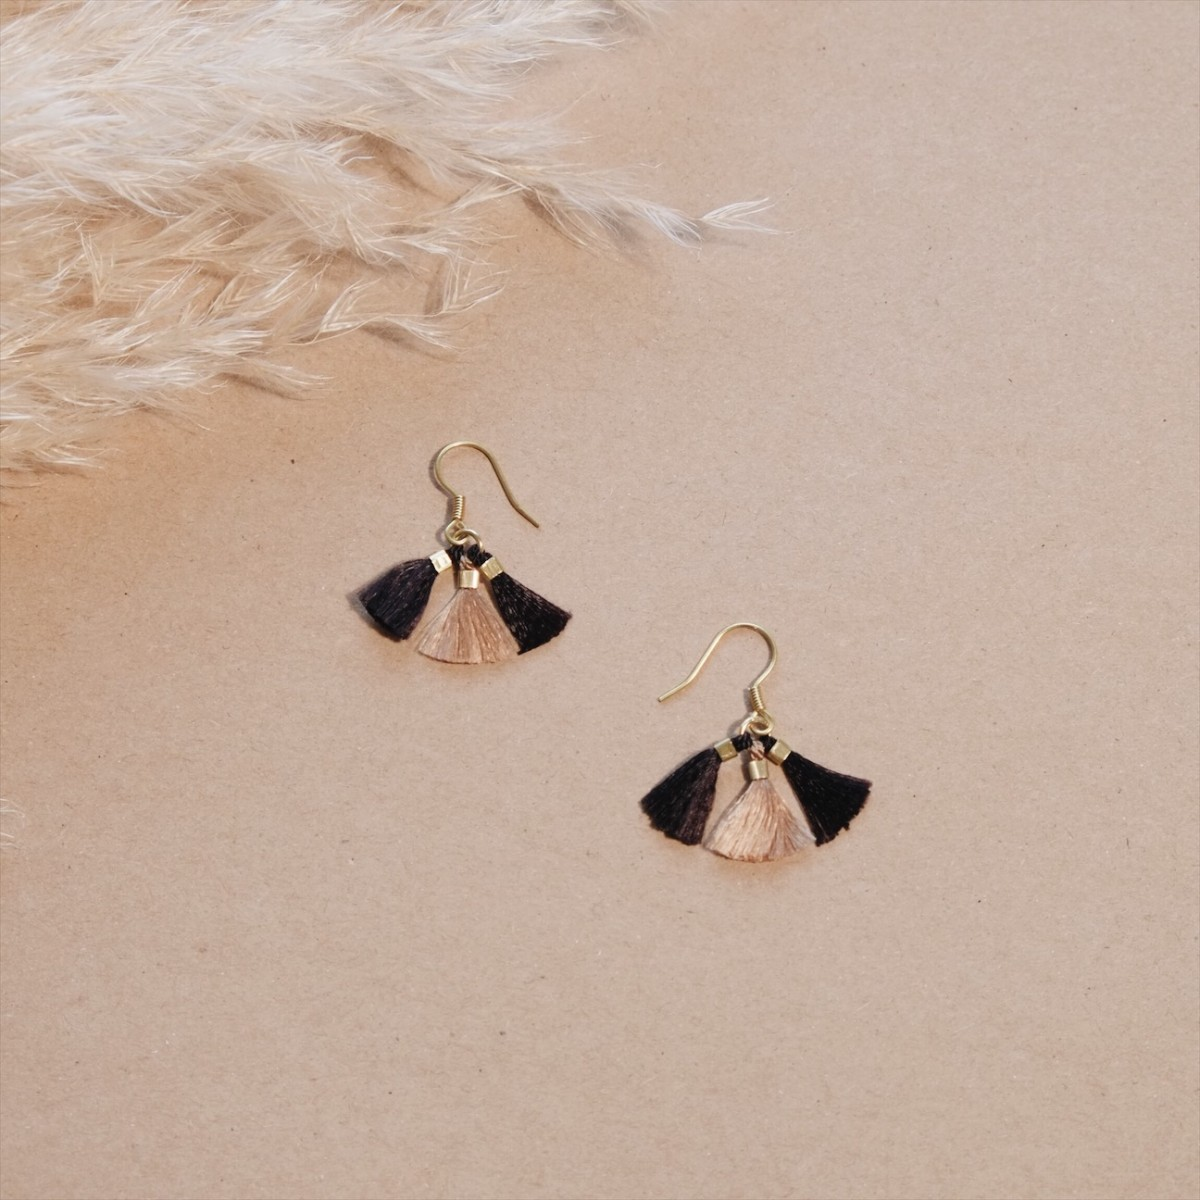 EVE + ADIS // TASSEL EARRINGS